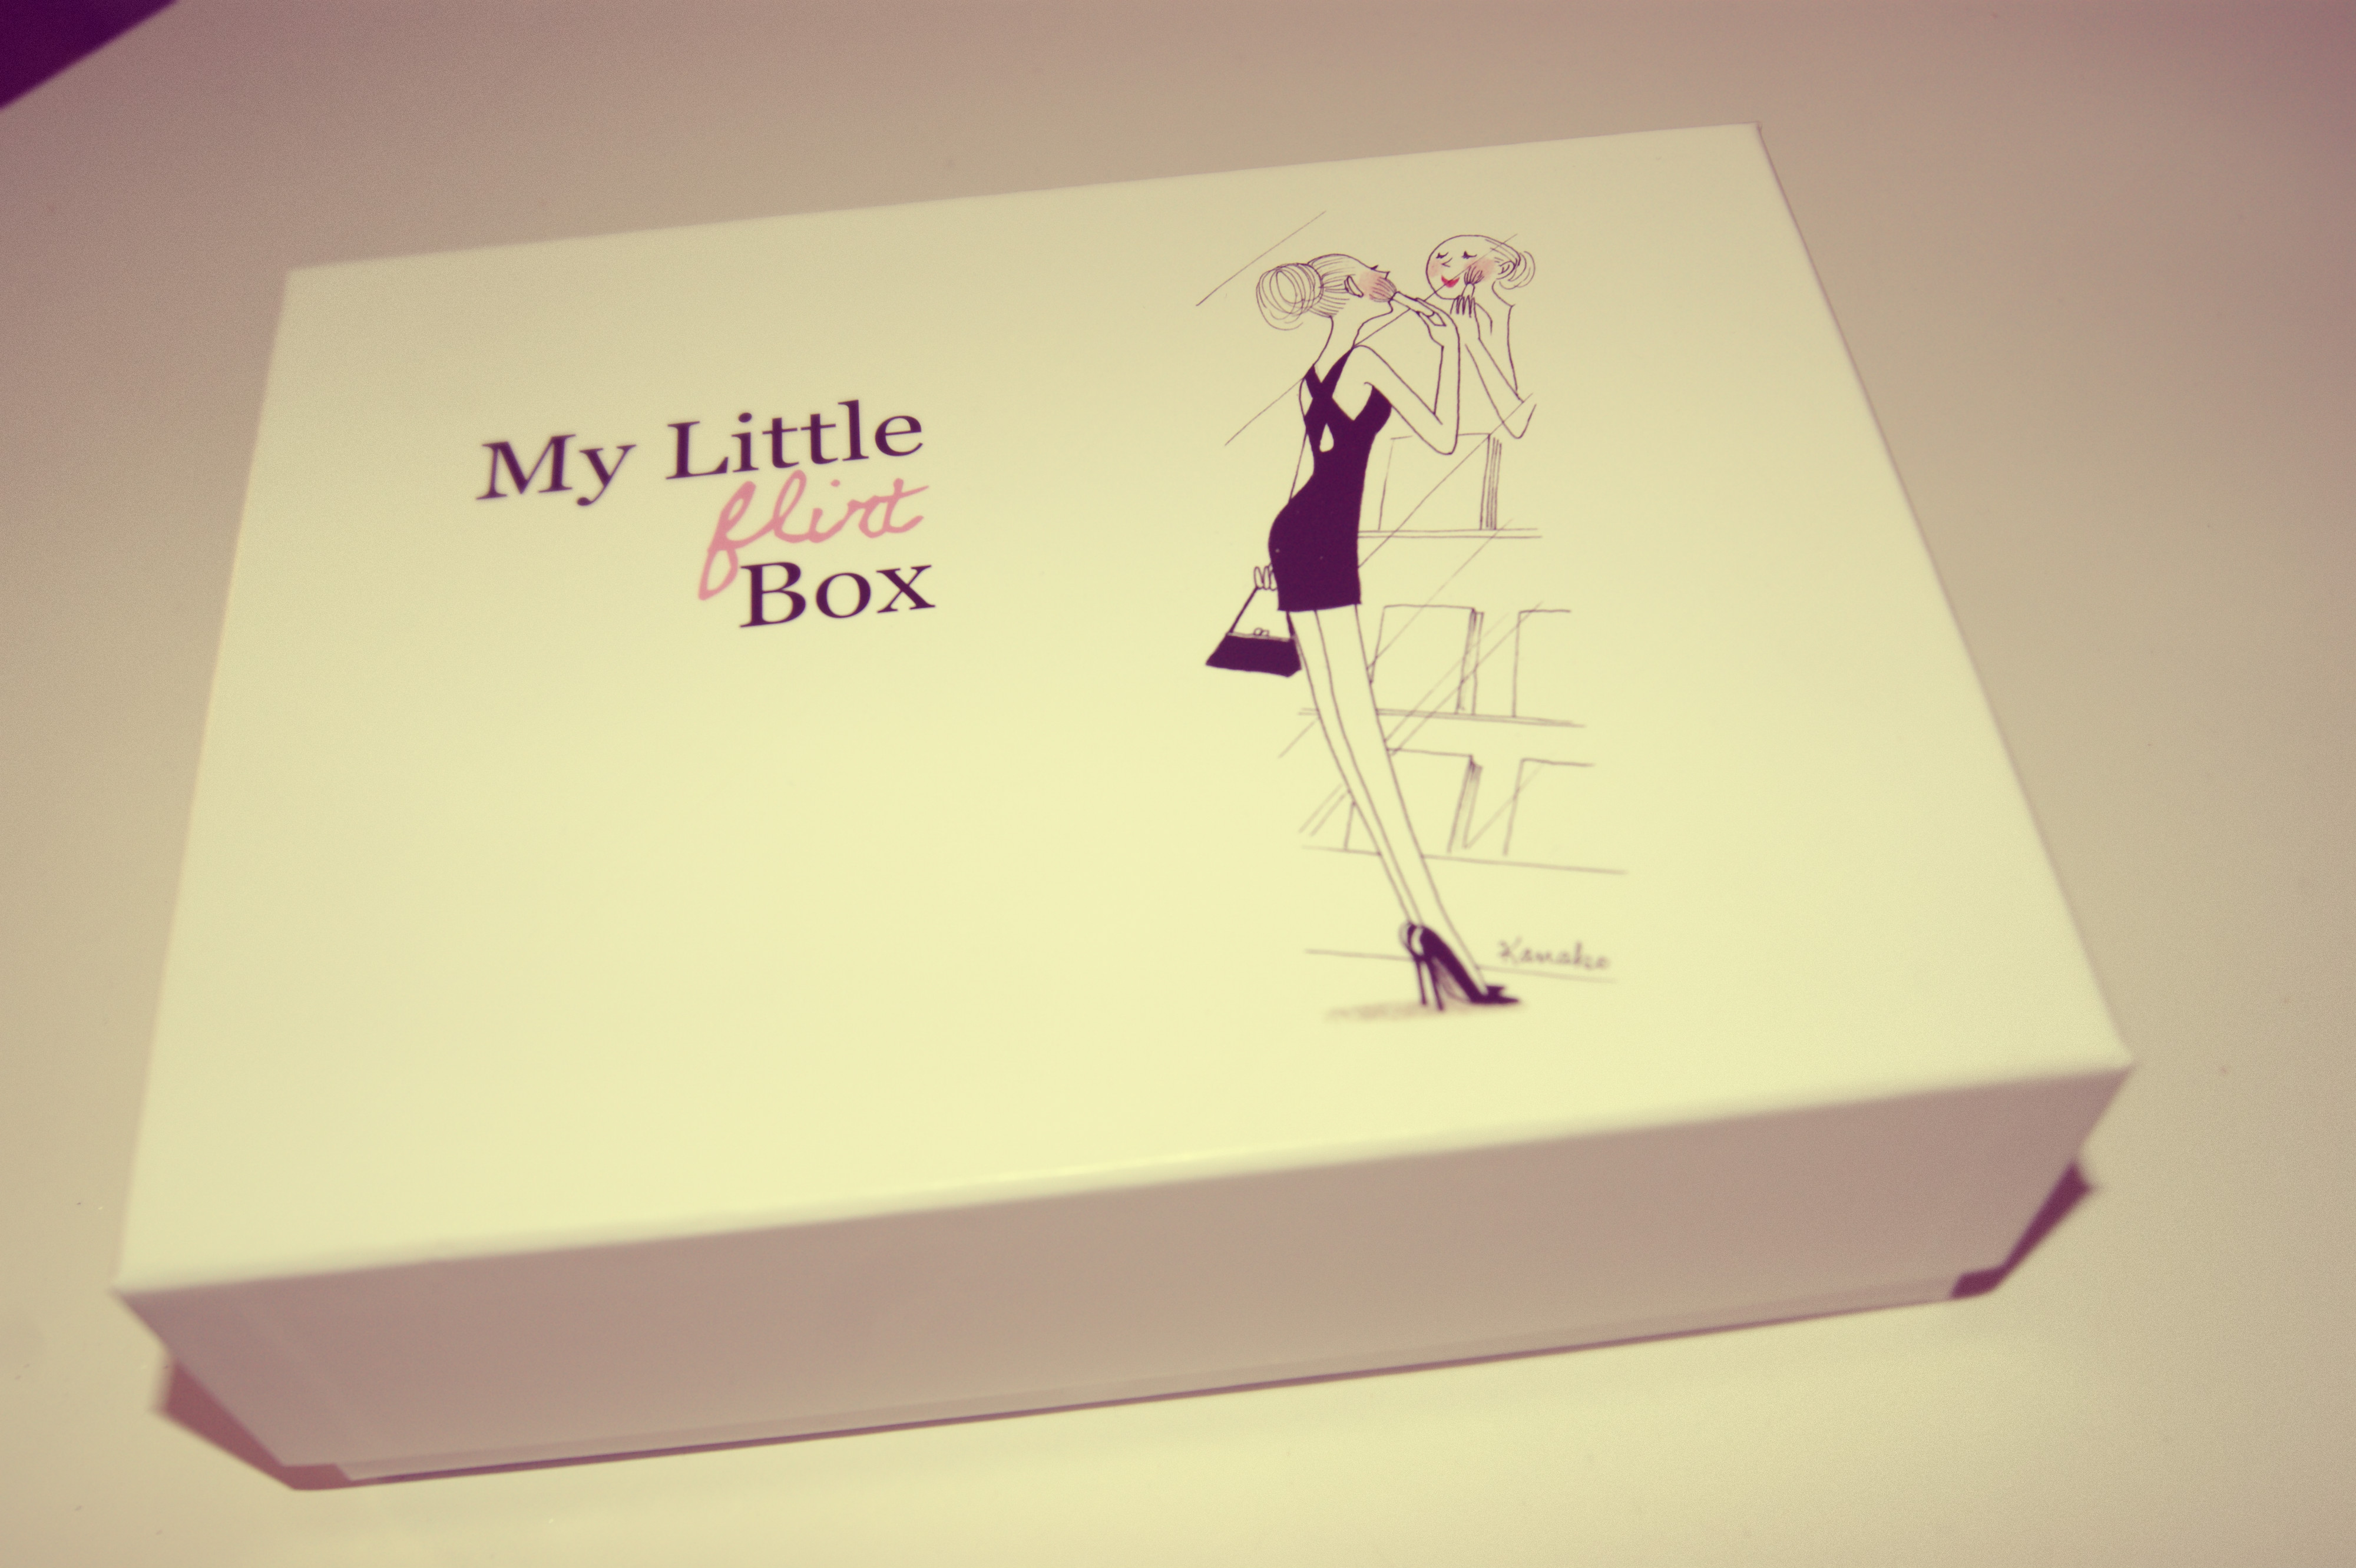 my little flirt box